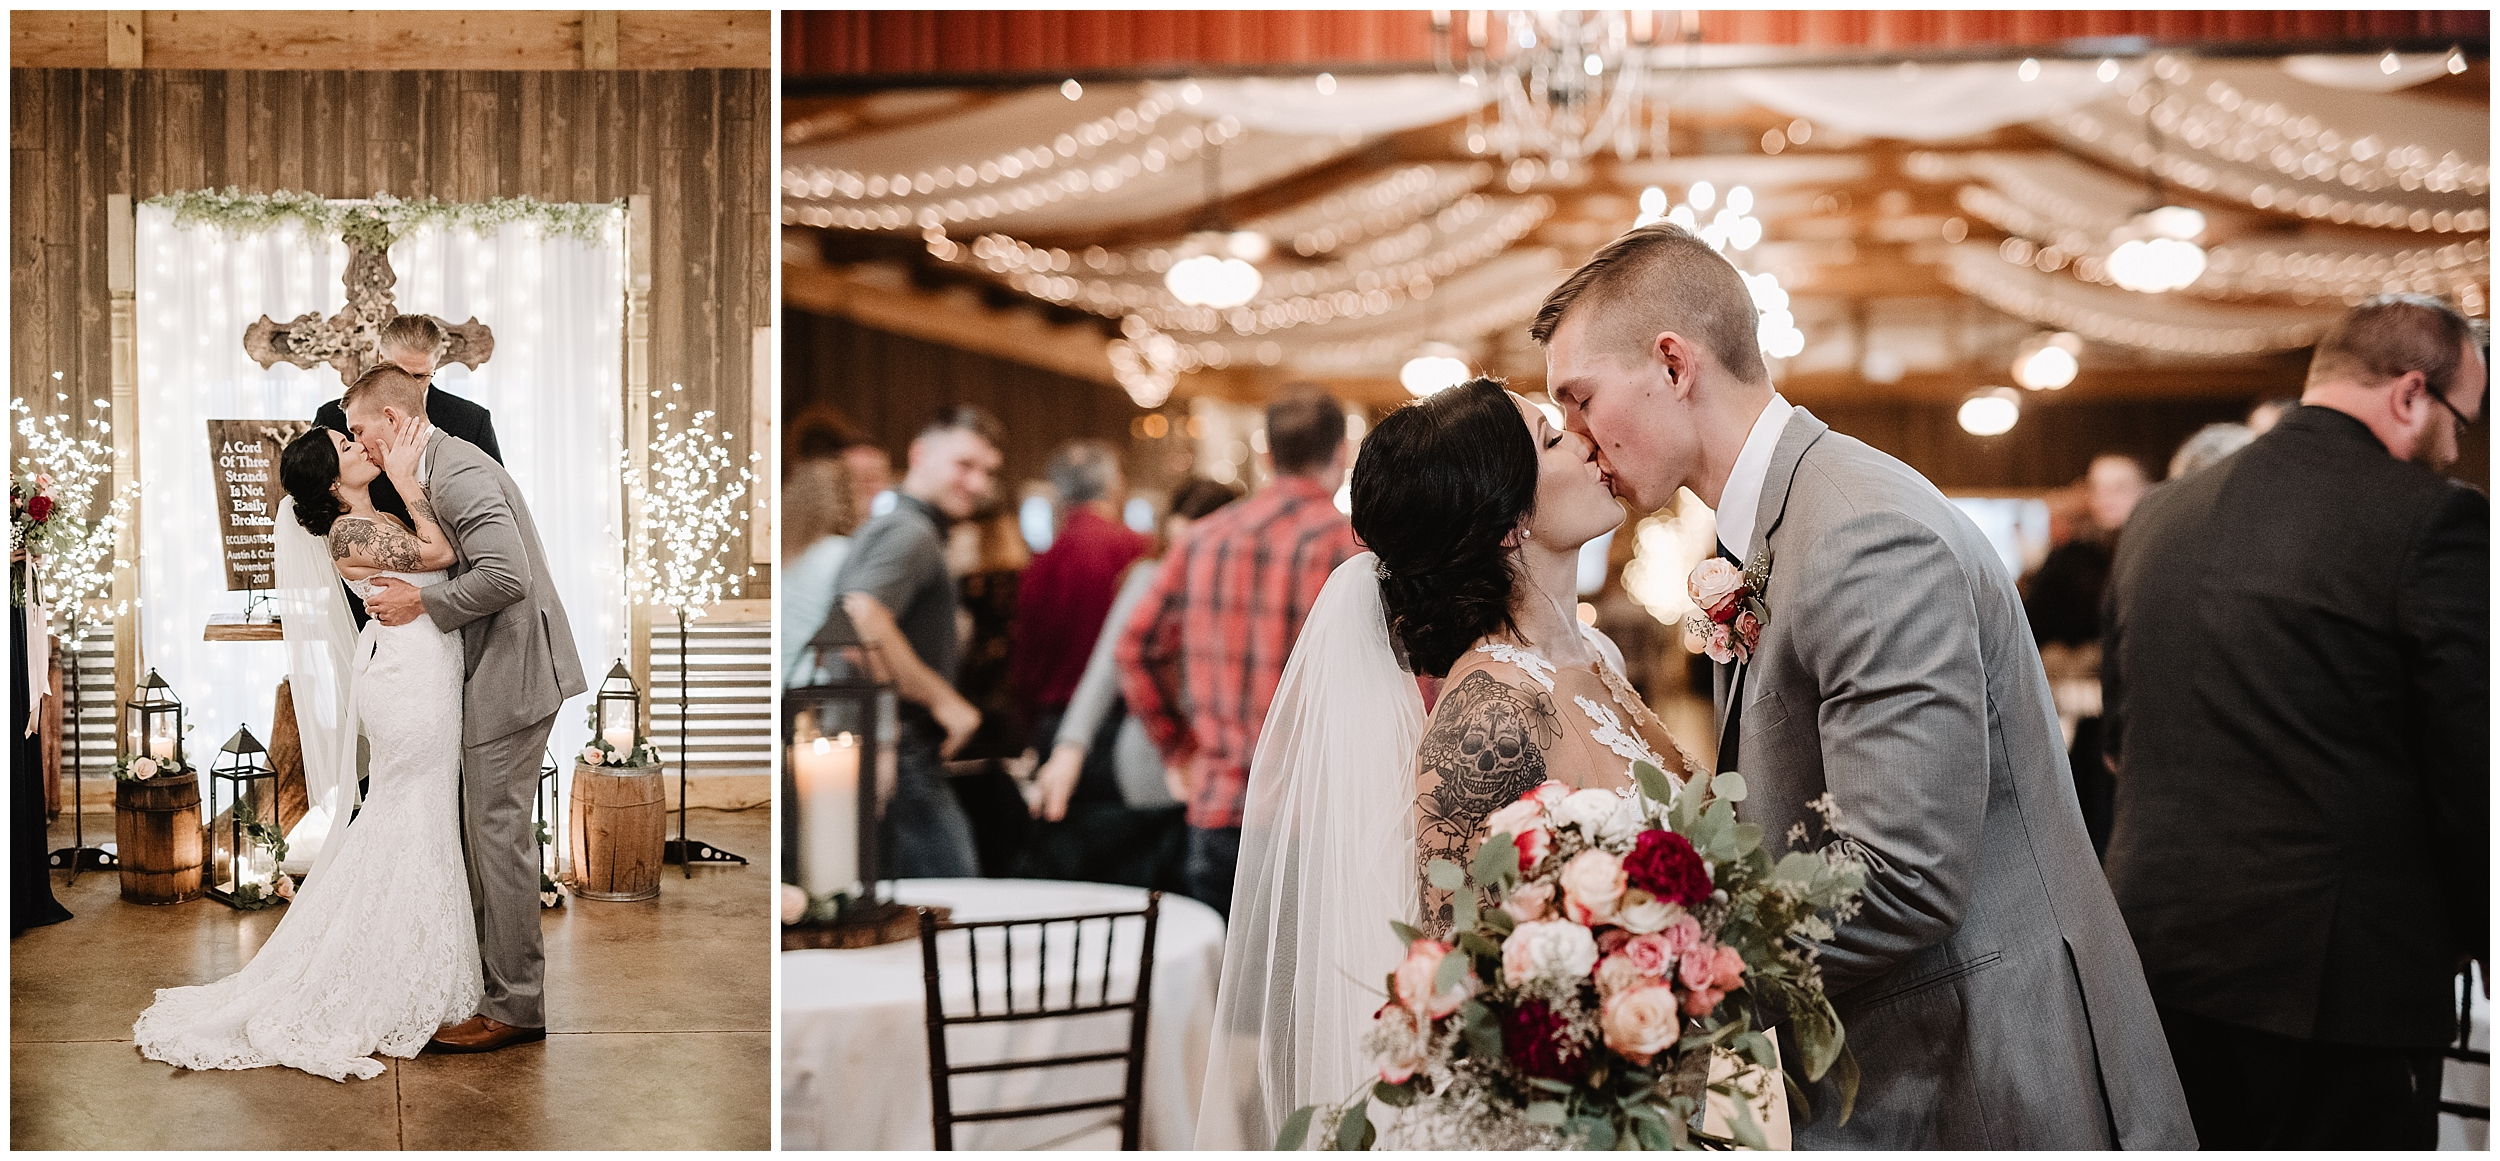 oklahoma wedding photographer ceremony marriage processional  viola kansas rustic timbers ceremony aisle bouquet kiss cross